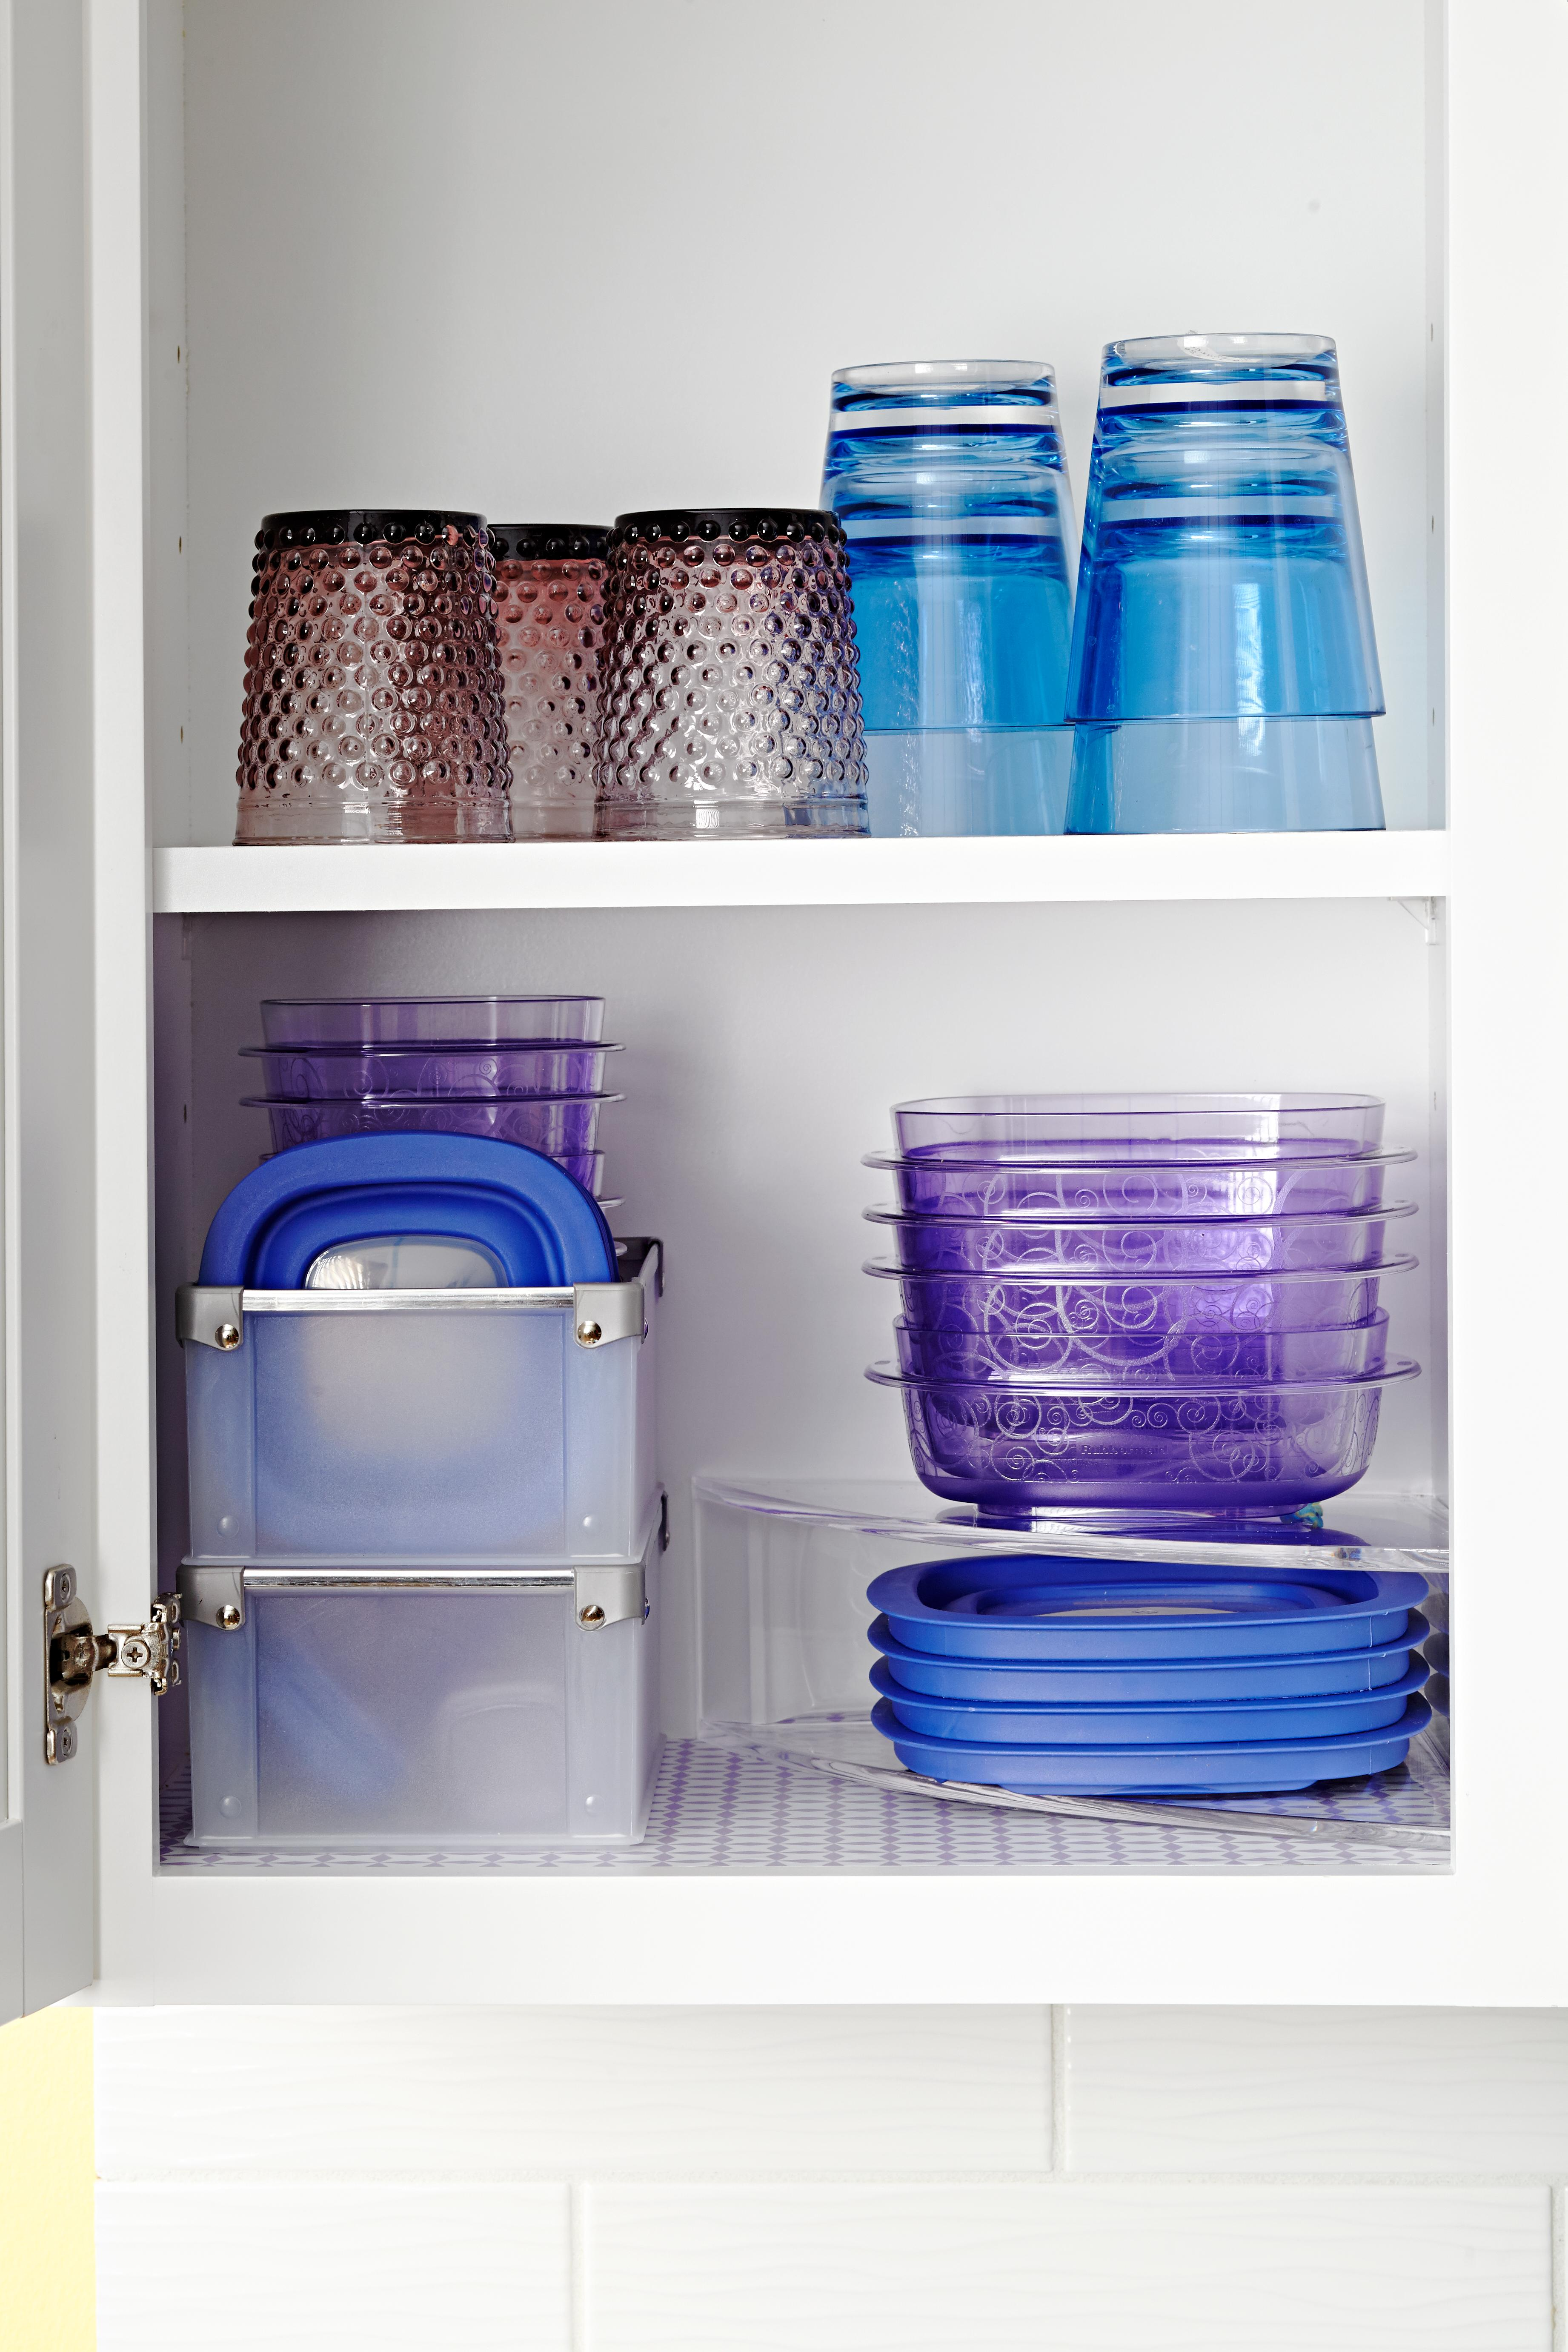 organized cupboard of blue and purple food storage containers